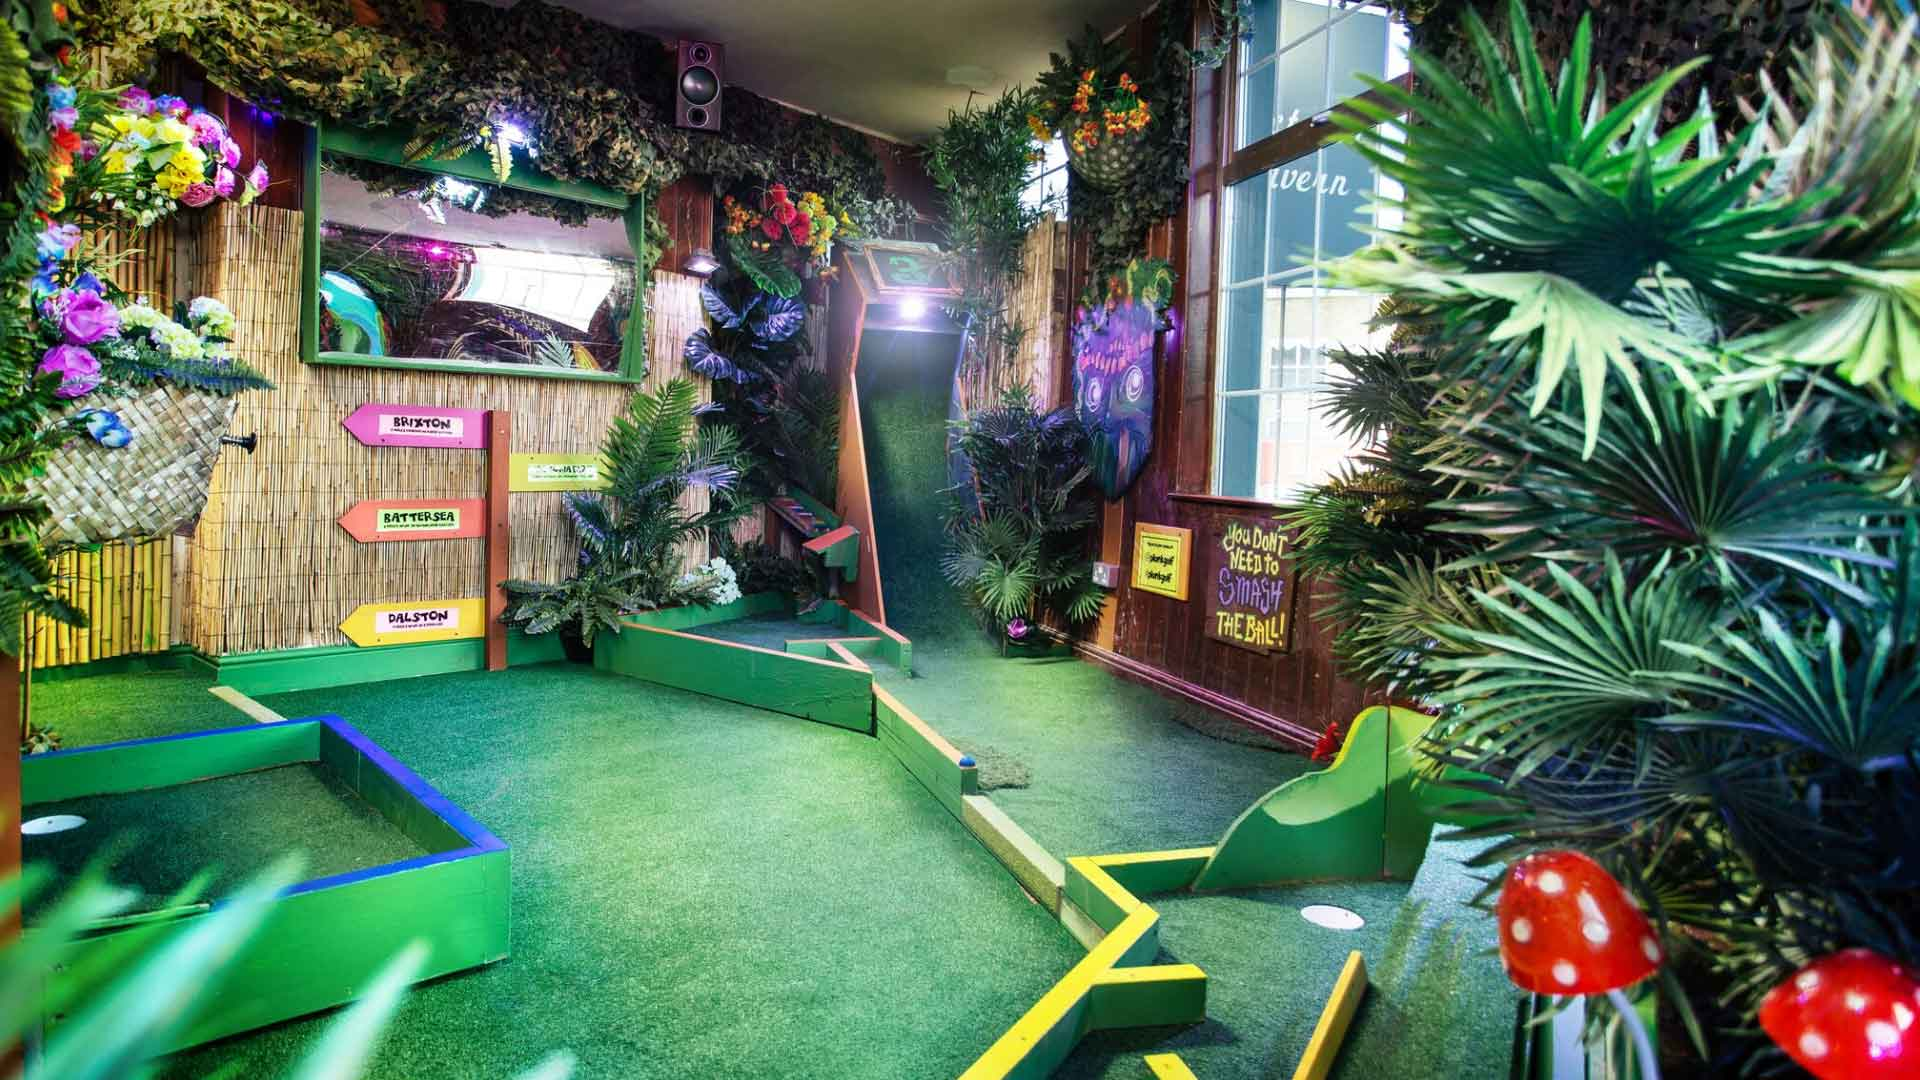 Islington crazy golf course